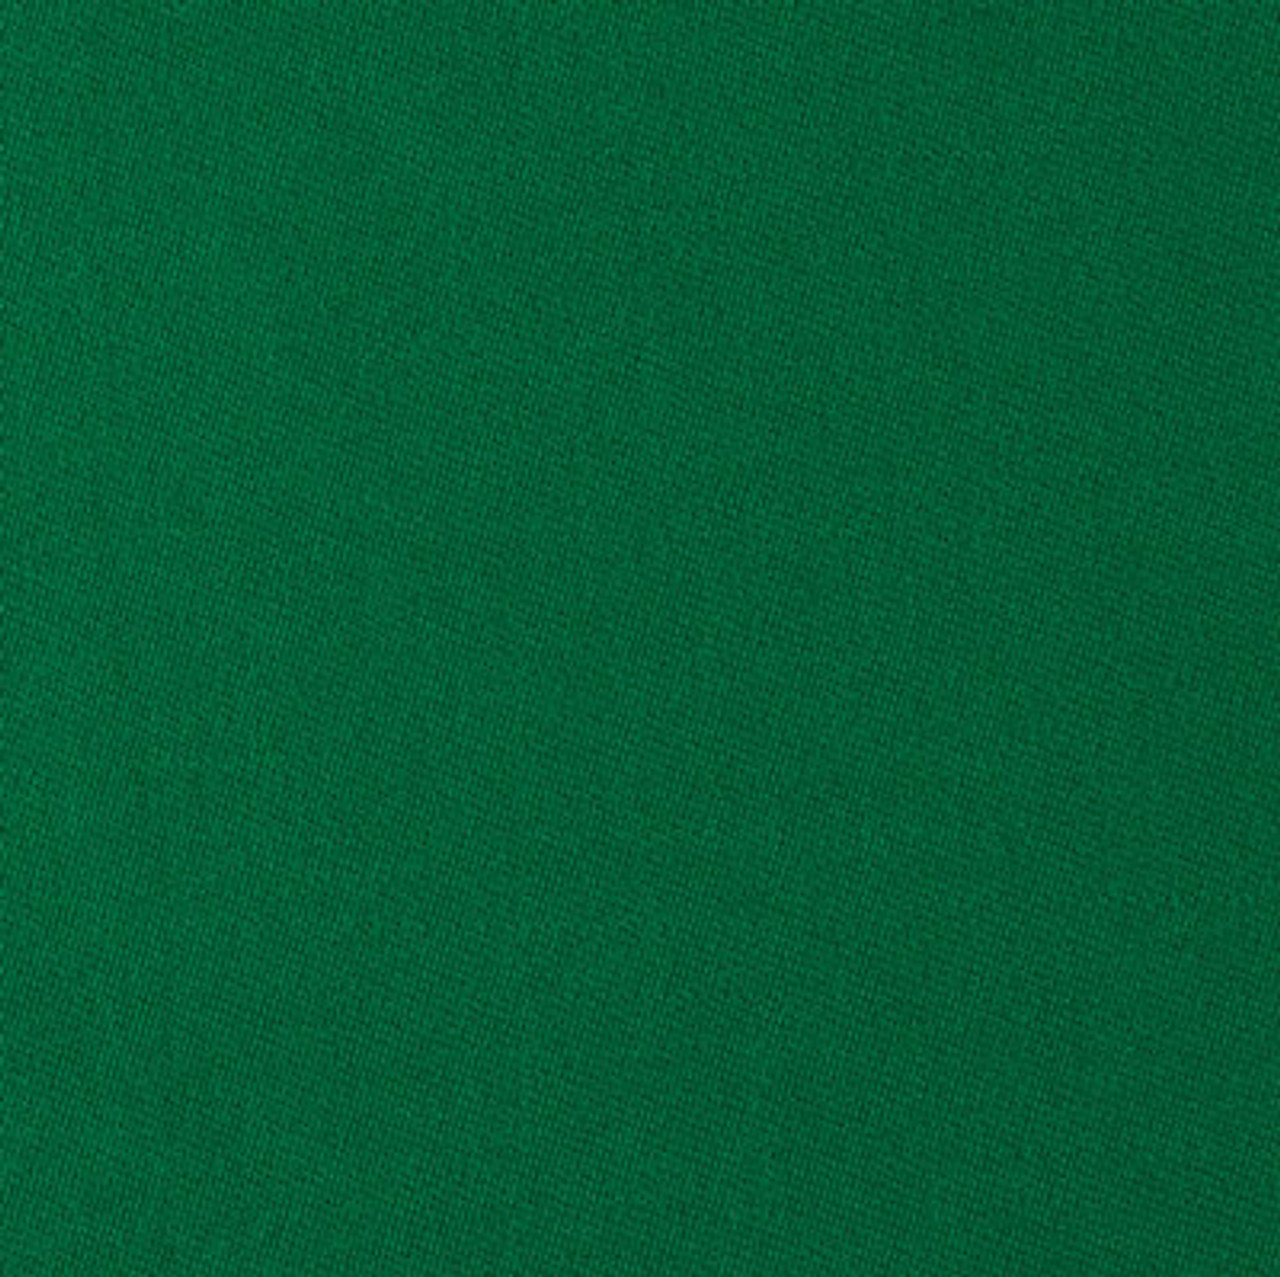 Simonis Cloth 860HR Pool Table Cloth Simonis Green 9ft